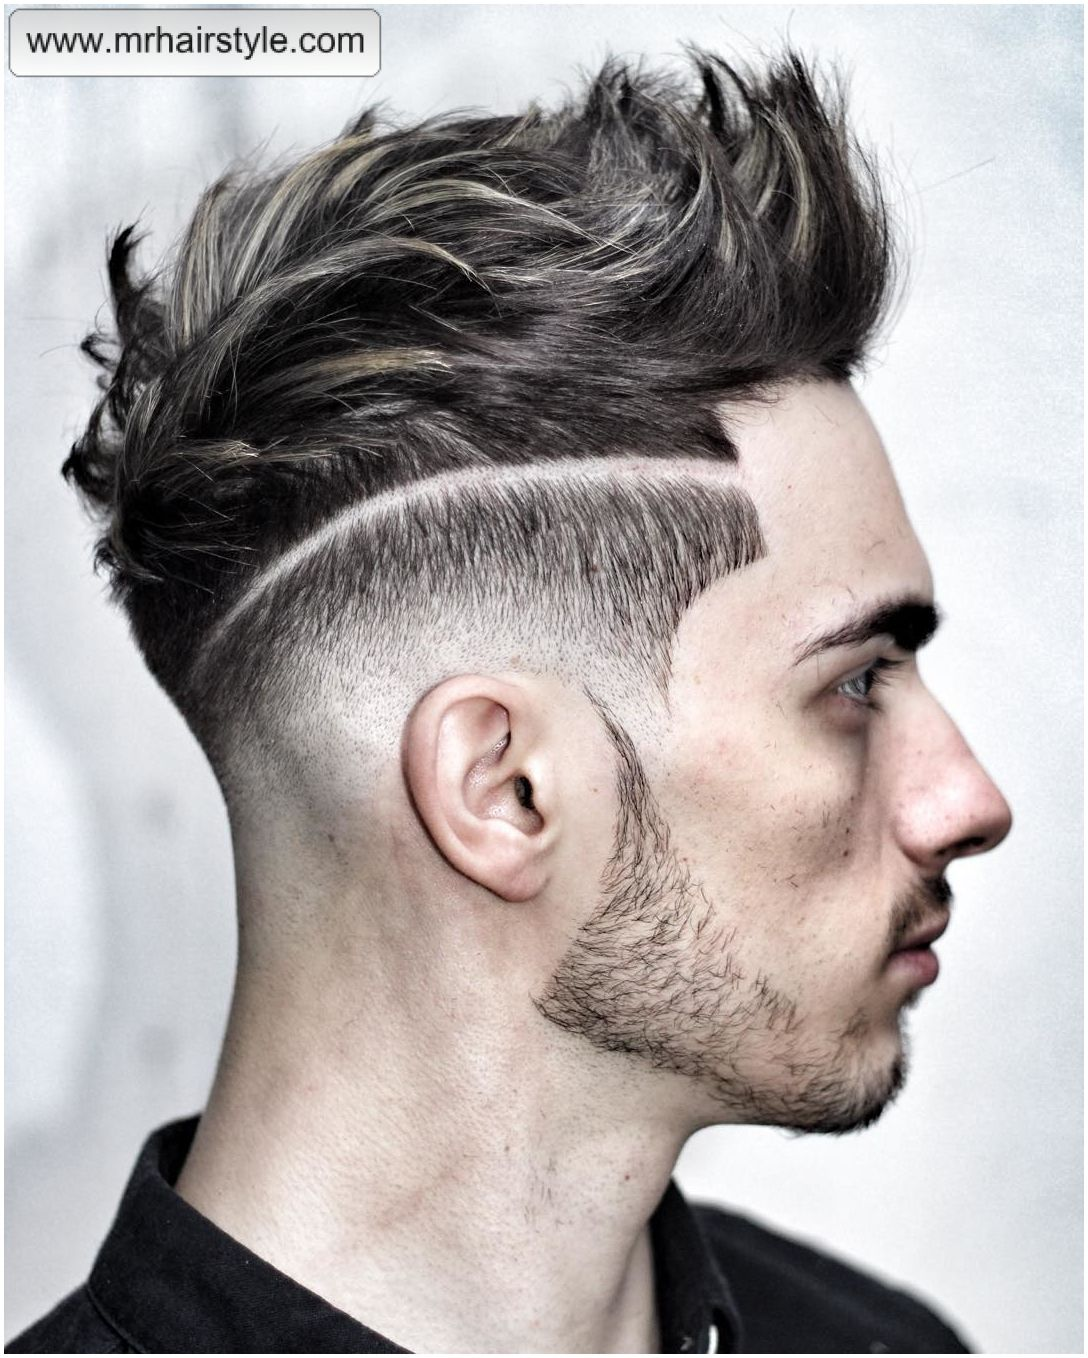 Hairstyles with quiff - Mens Haircut Styles Quiff Inspiration